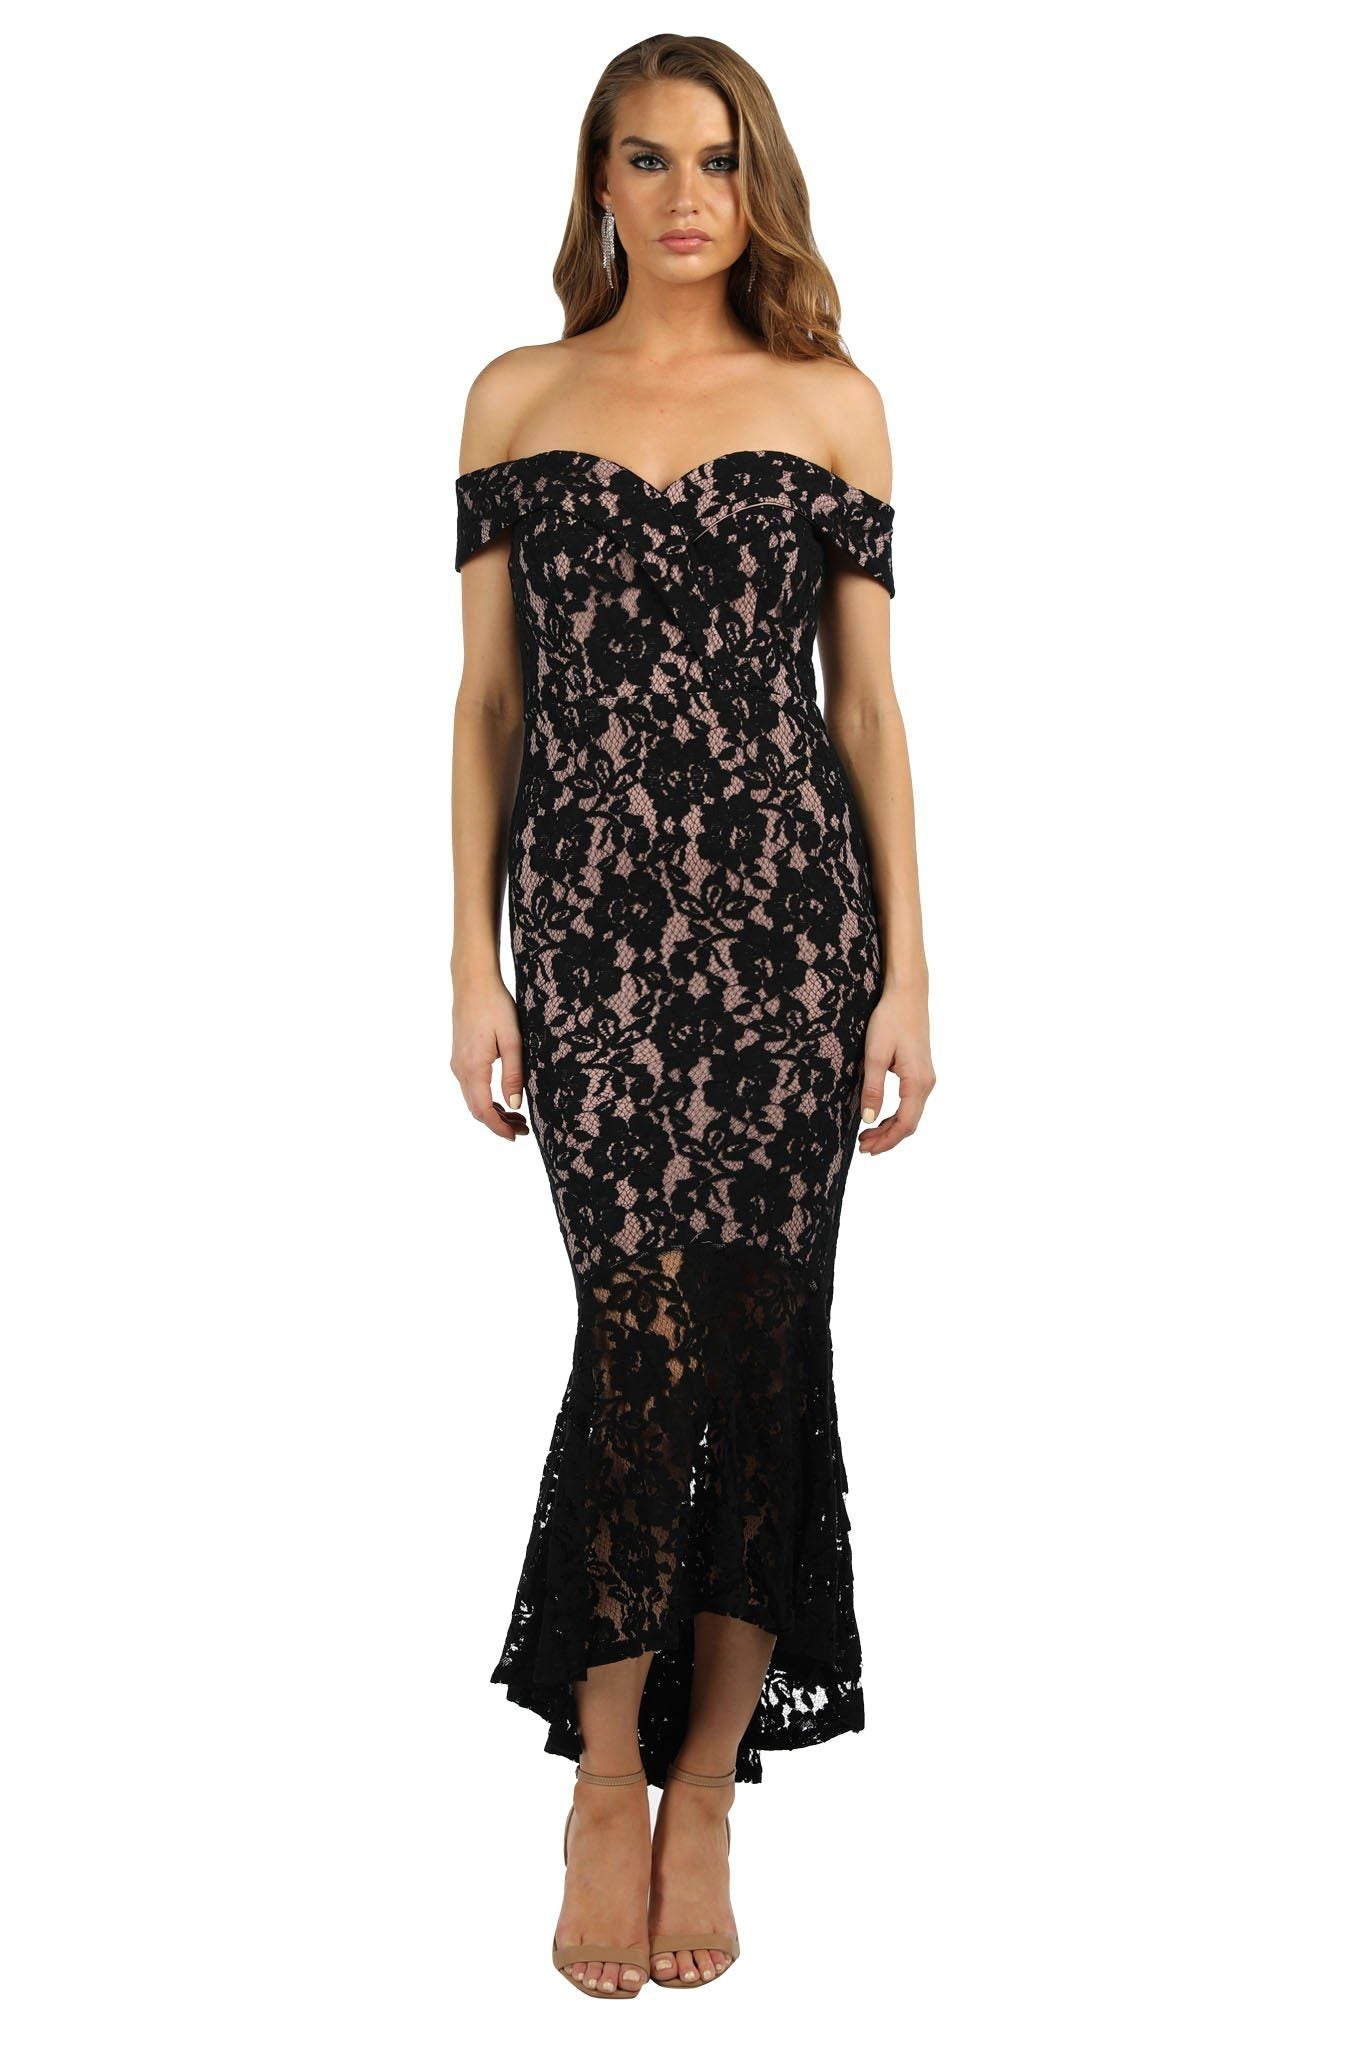 068632d008d4 Black lace dress with blush pink lining